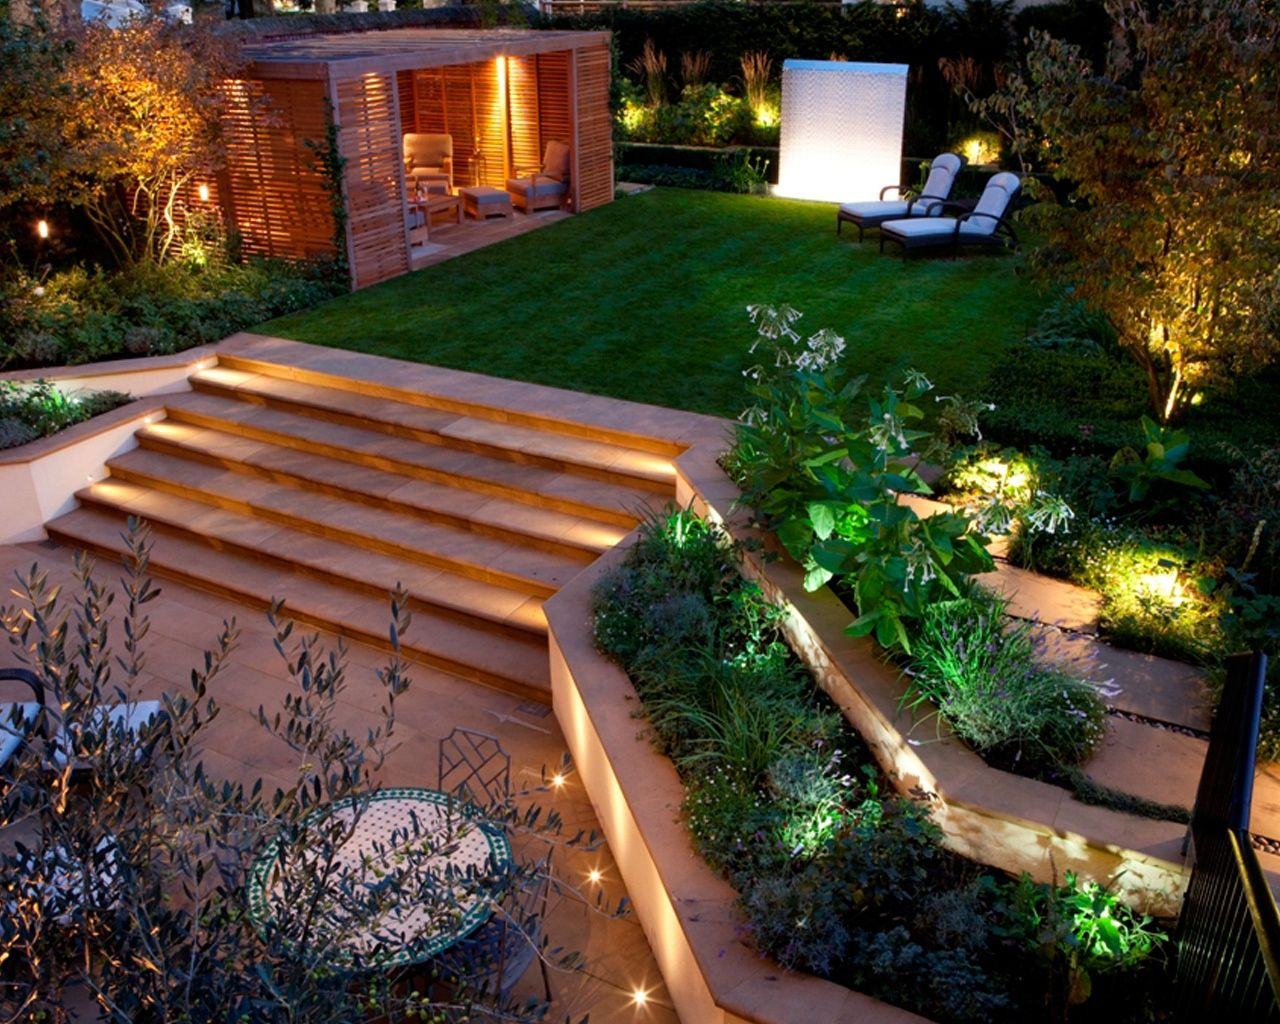 Garden Design 50 Modern Garden Design Ideas To Try In 2017  Contemporary Garden .